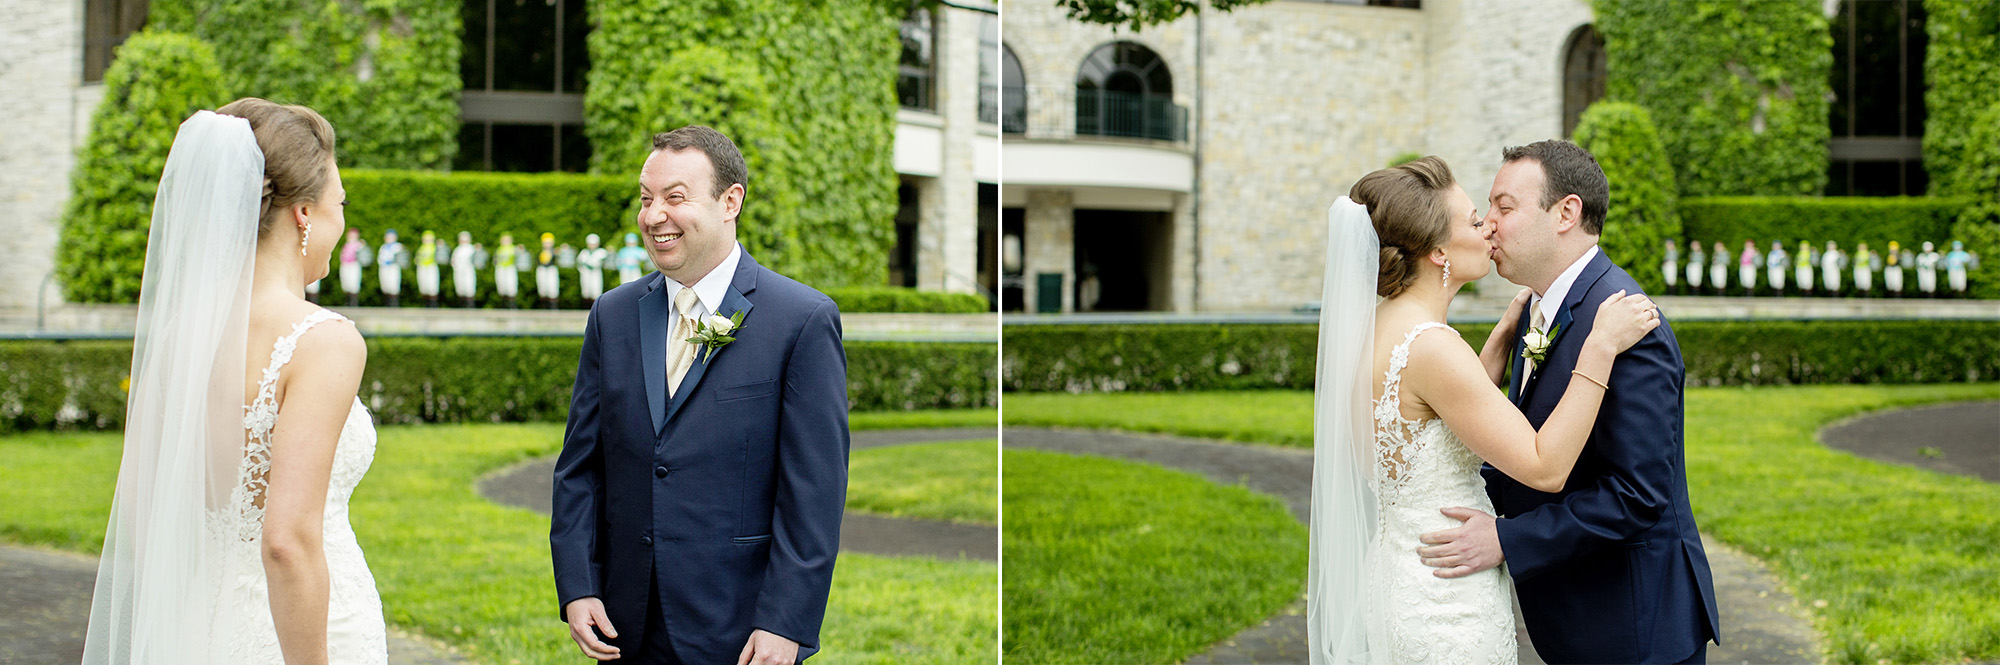 Seriously_Sabrina_Photography_Lexington_Kentucky_Downtown_Keeneland_Clubhouse_Wedding_Spitzer_40.jpg